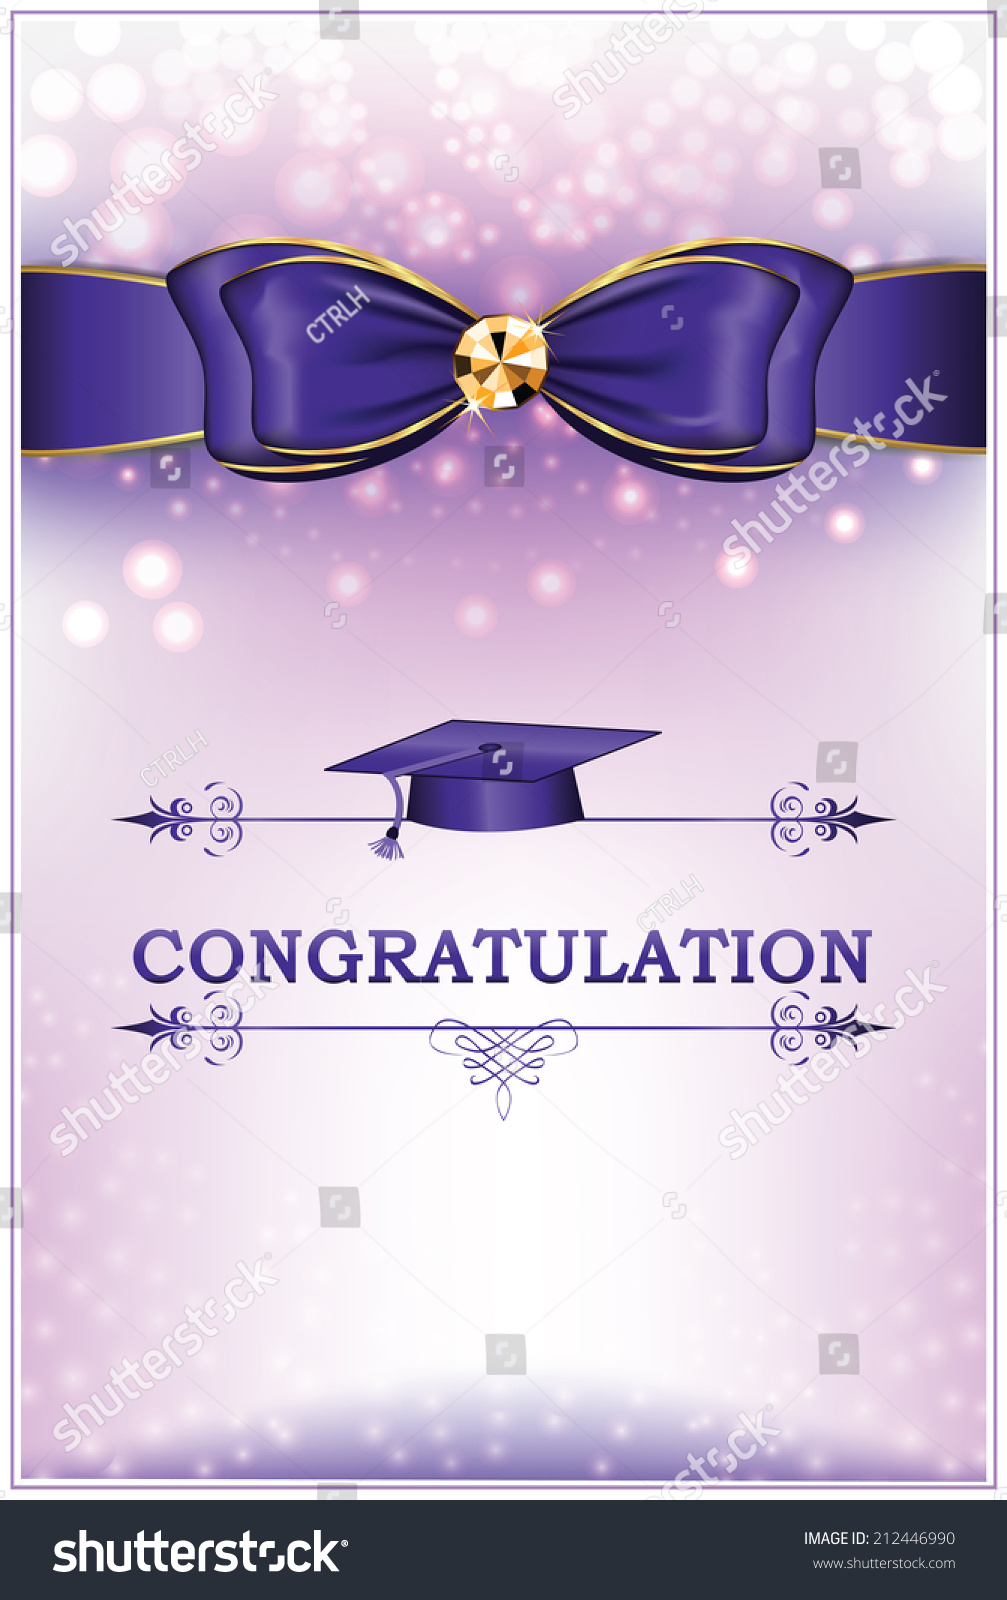 Royalty Free Congratulation Graduation Greeting 212446990 Stock